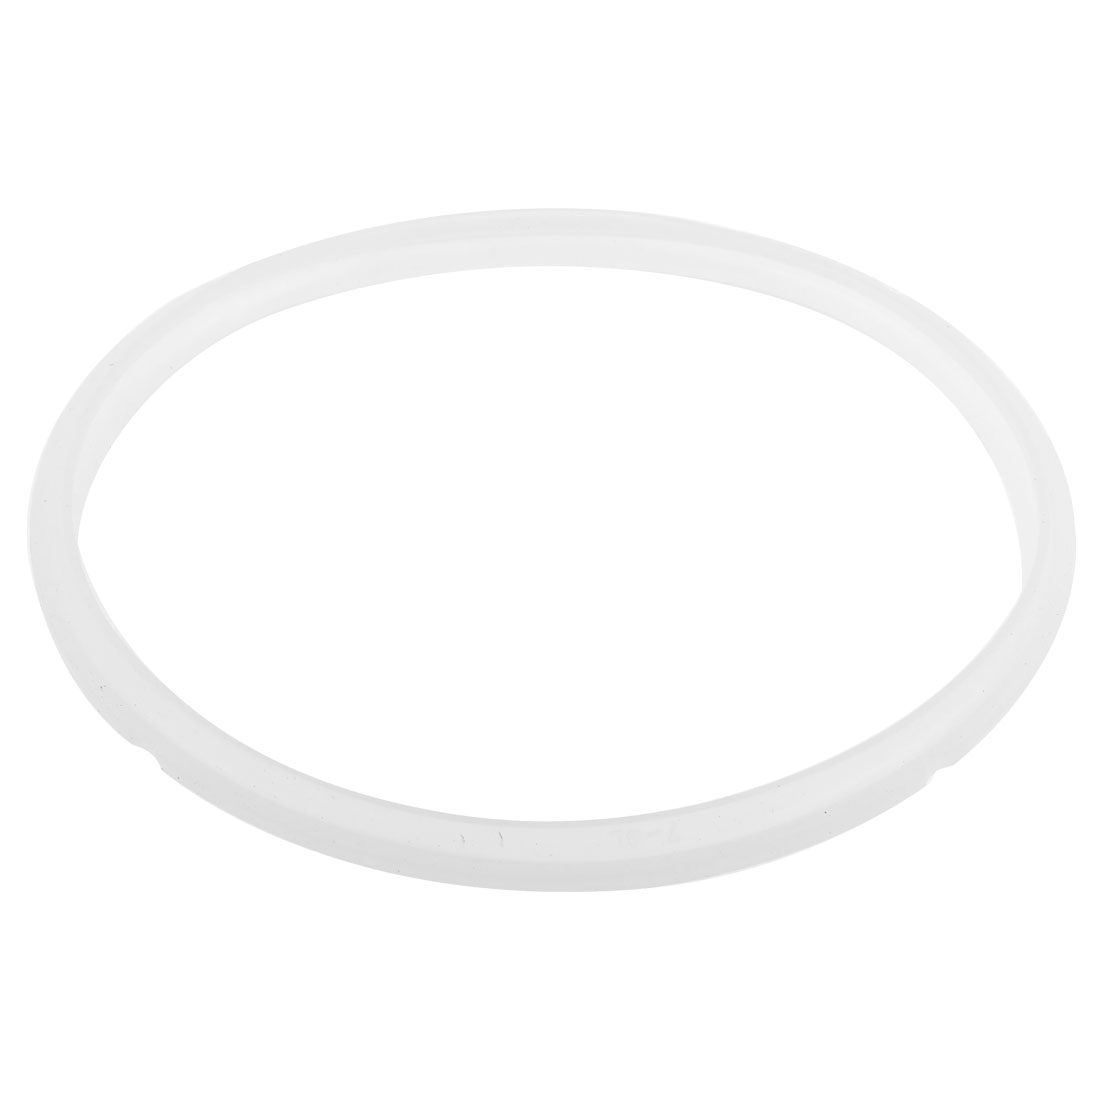 7-8L Pressure Cooker 24.5cm Dia Silicone Gasket Sealing Ring White